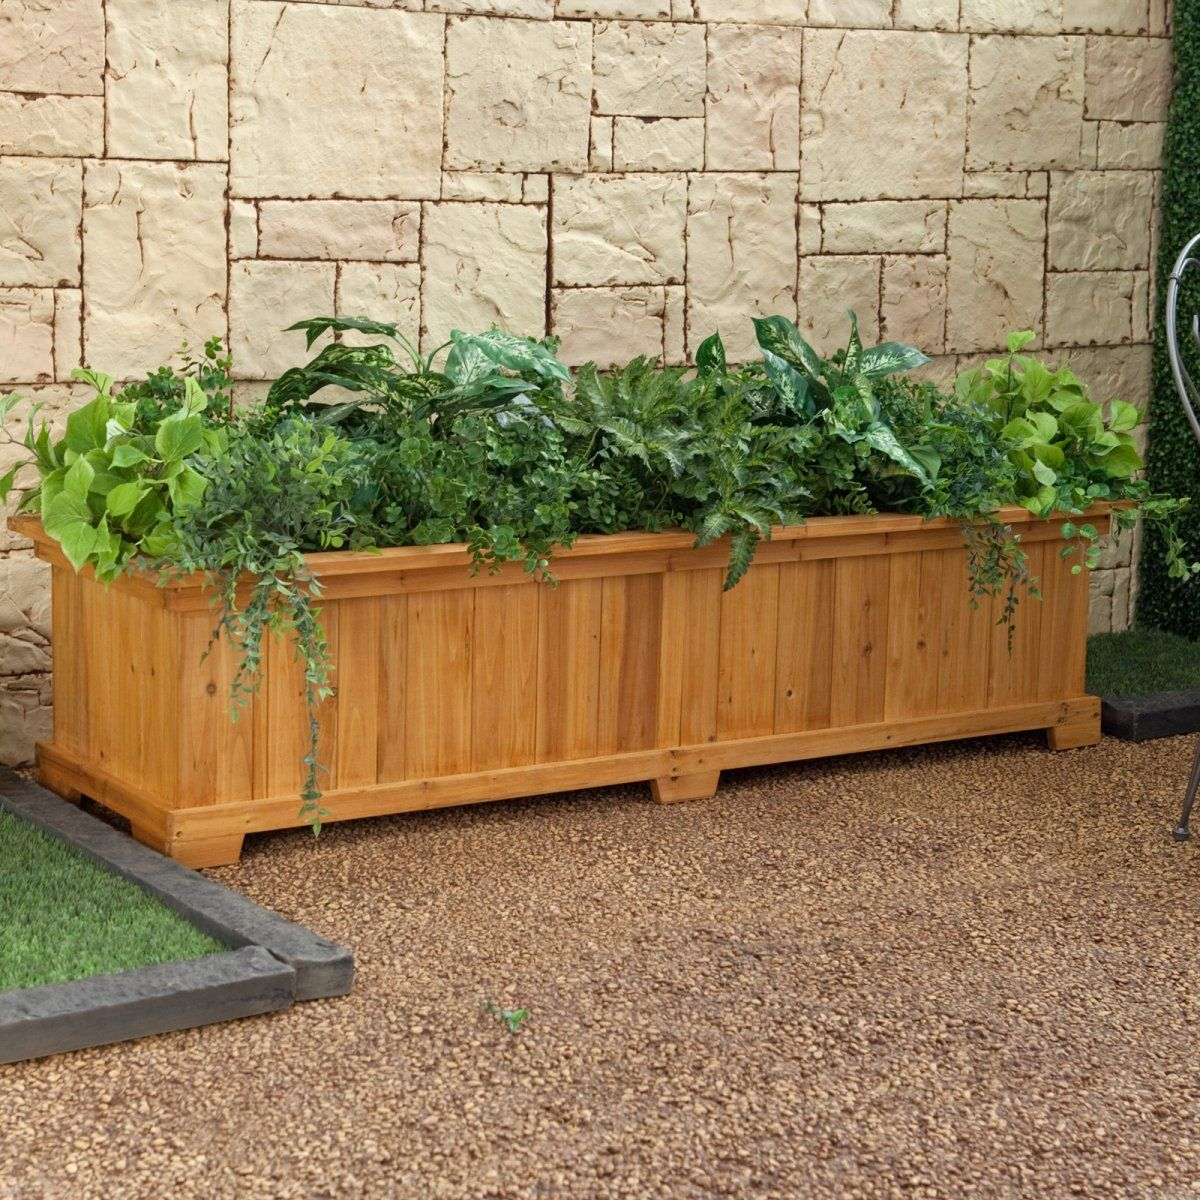 Rectangular cedar wood aster patio planter box planter for Large garden planter ideas